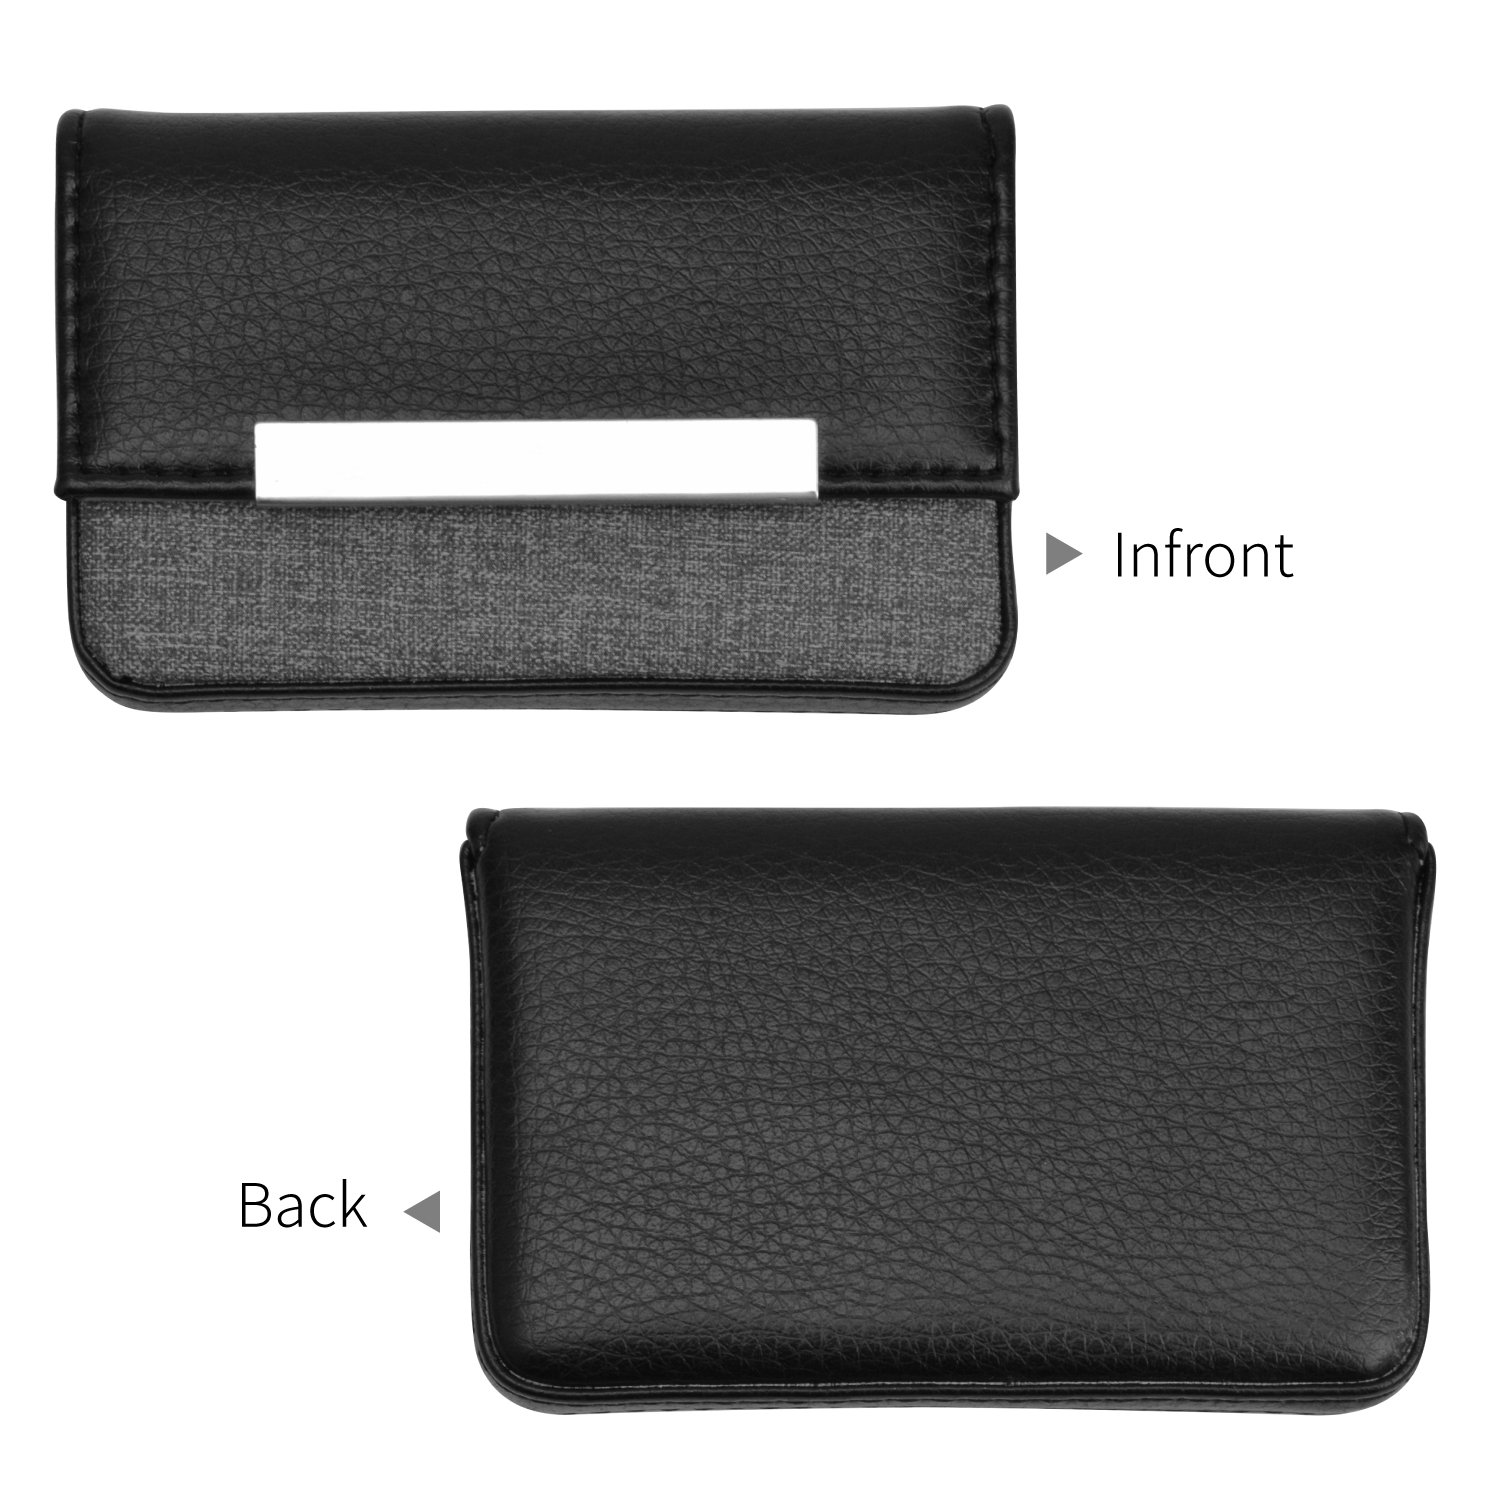 255c40885236 MaxGear Business Card Holder Professional Business Card Case Luxury PU  Leather and Stainless Steel Card Holder for Men and Women with Magnetic Shut  ...